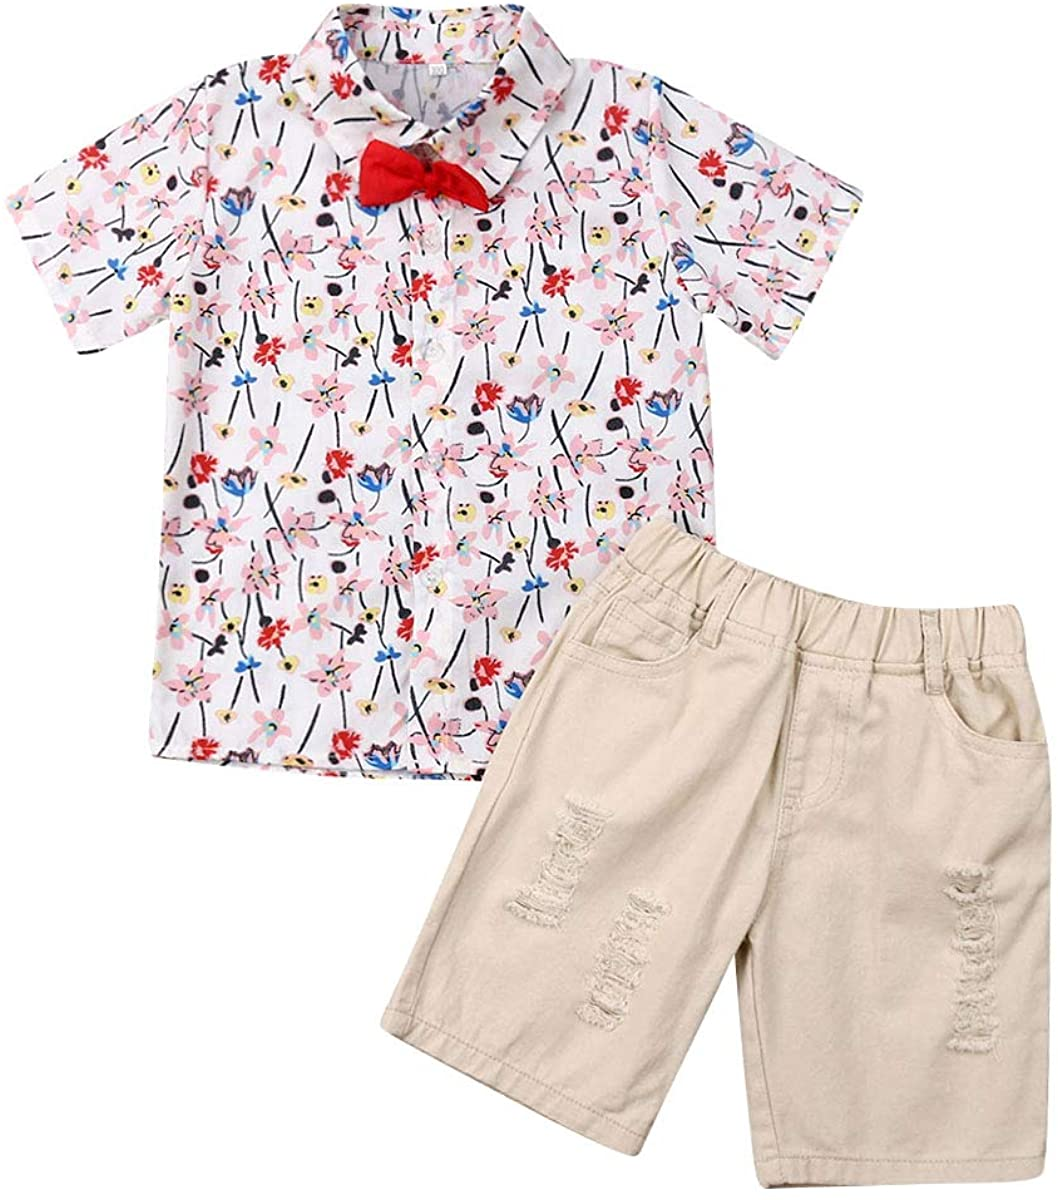 2 Pieces Toddler Baby Boy Gentleman Suit Rose Bow Tie Short Sleeve Floral Shirt Shorts Pants Outfit Set